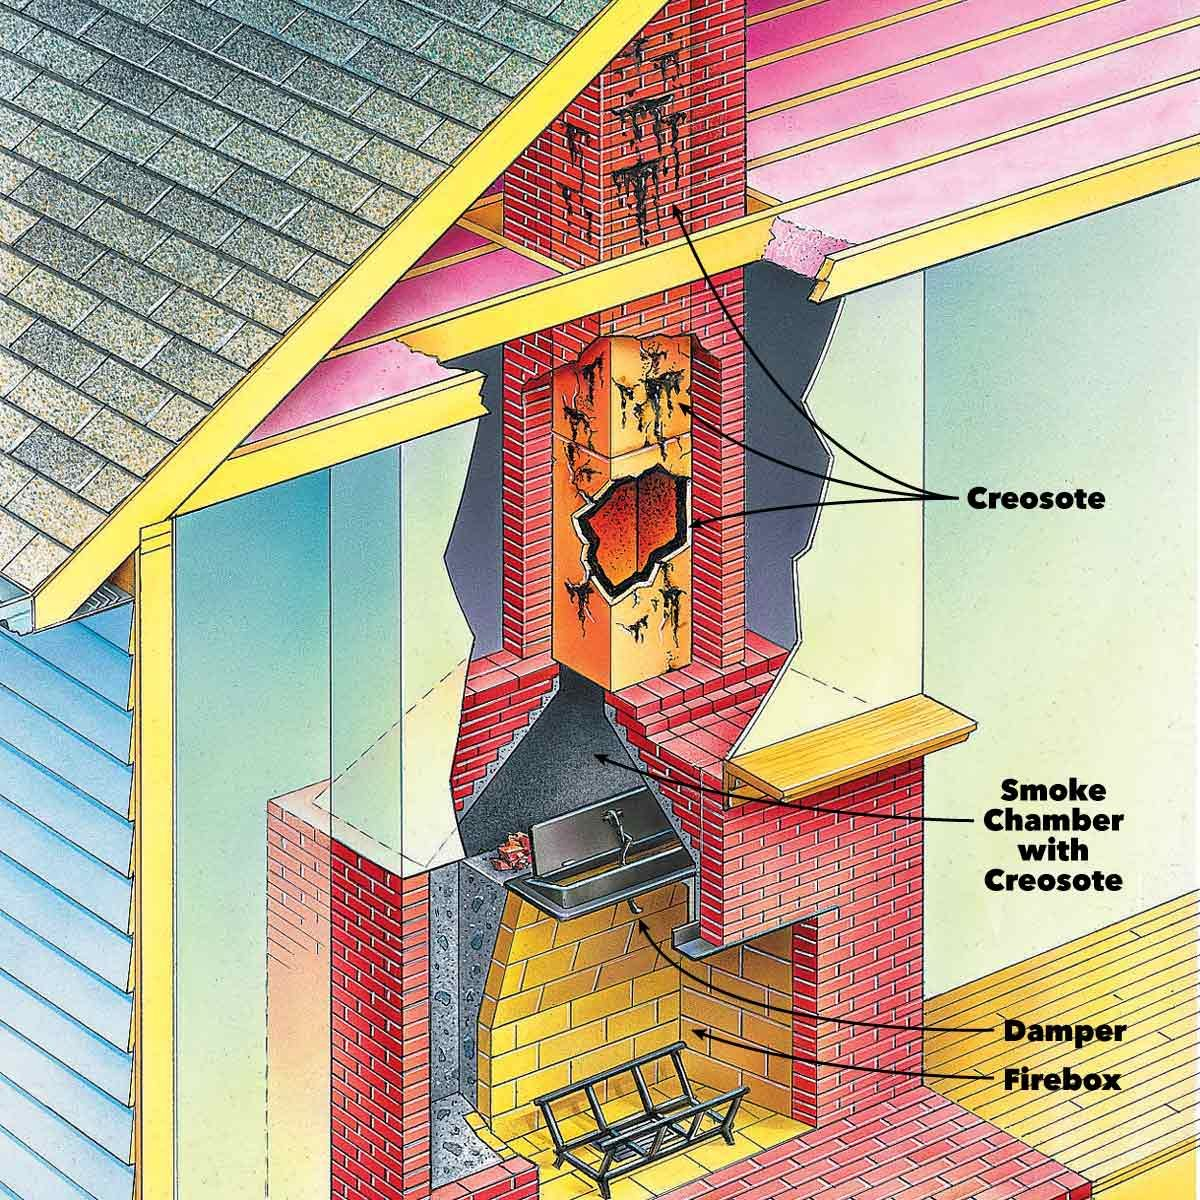 Cleaning A Fireplace Fireplace Cleaning When To Clean A Chimney Flue Family Handyman